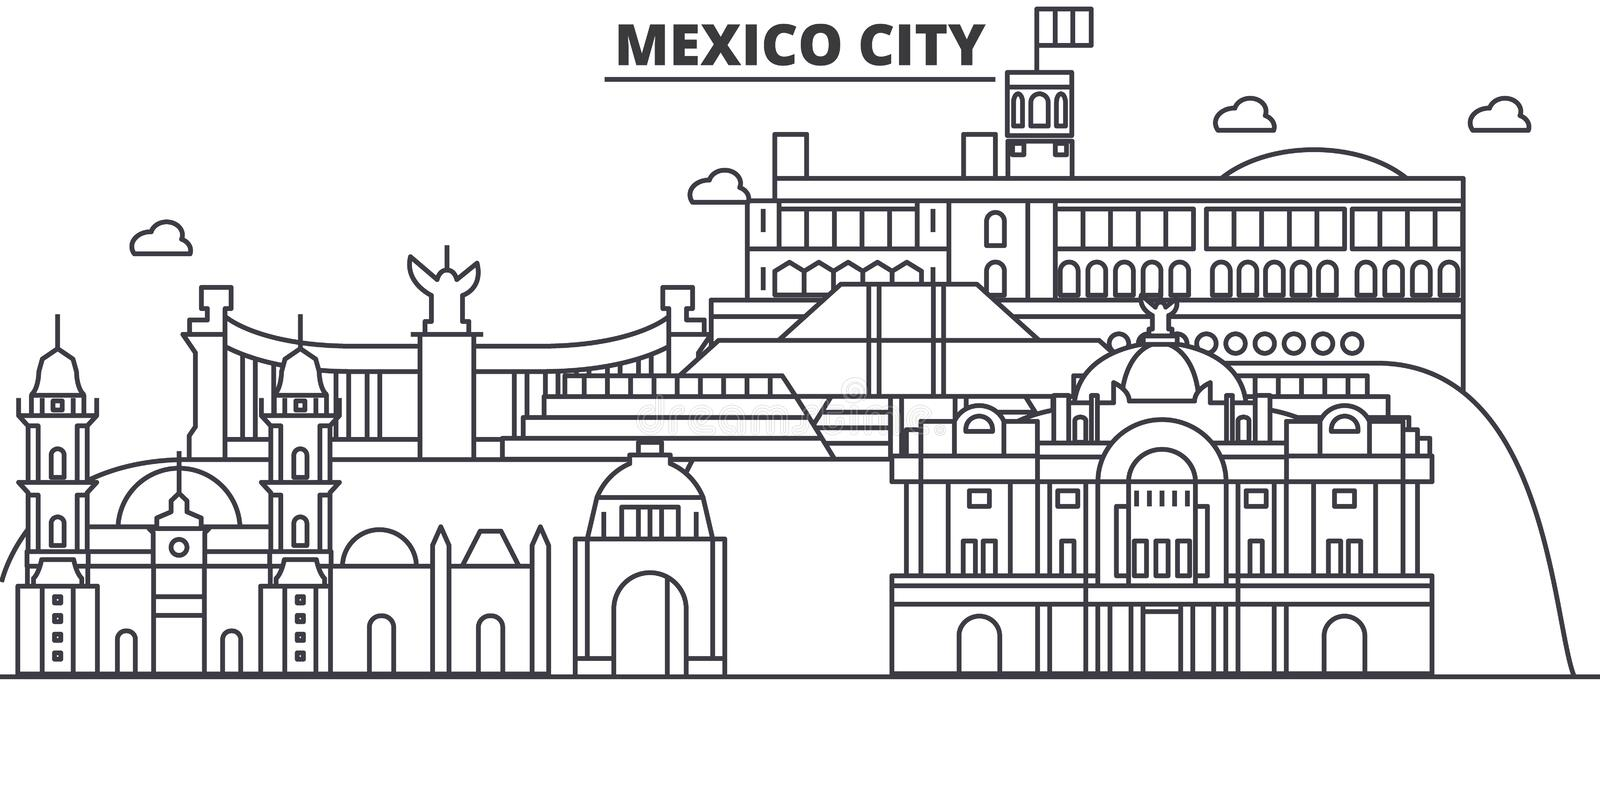 Mexico City architecture line skyline illustration. Linear vector cityscape with famous landmarks, city sights, design. Icons. Editable strokes vector illustration